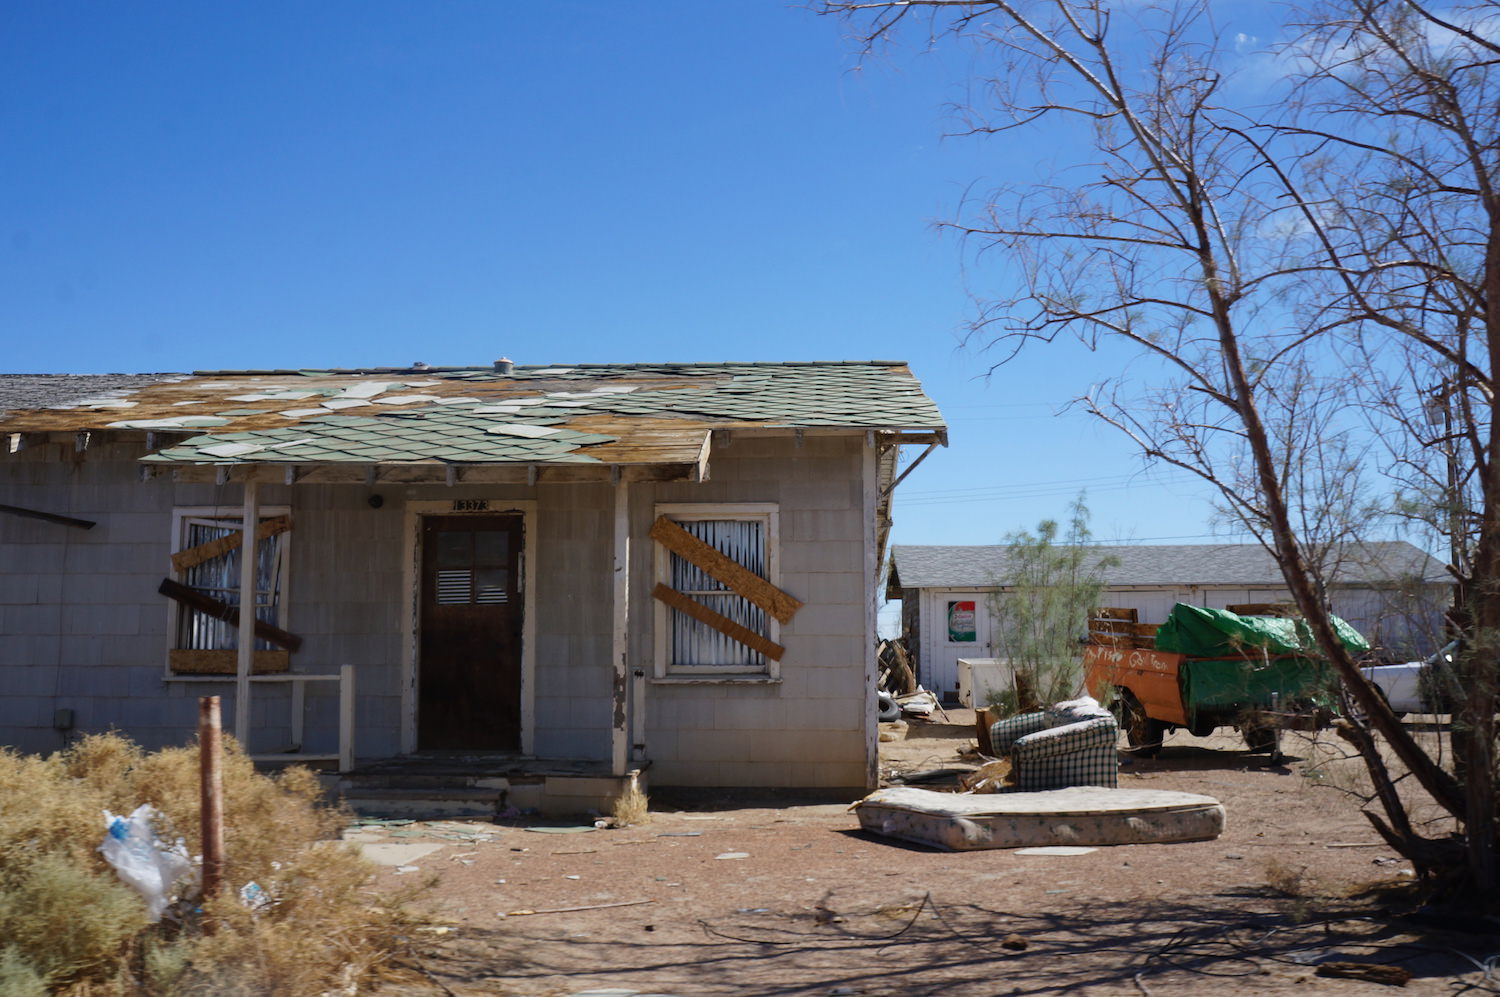 Most of the homes we saw looked like this, however they're not all abandoned. Several are lived in which seemed surreal.